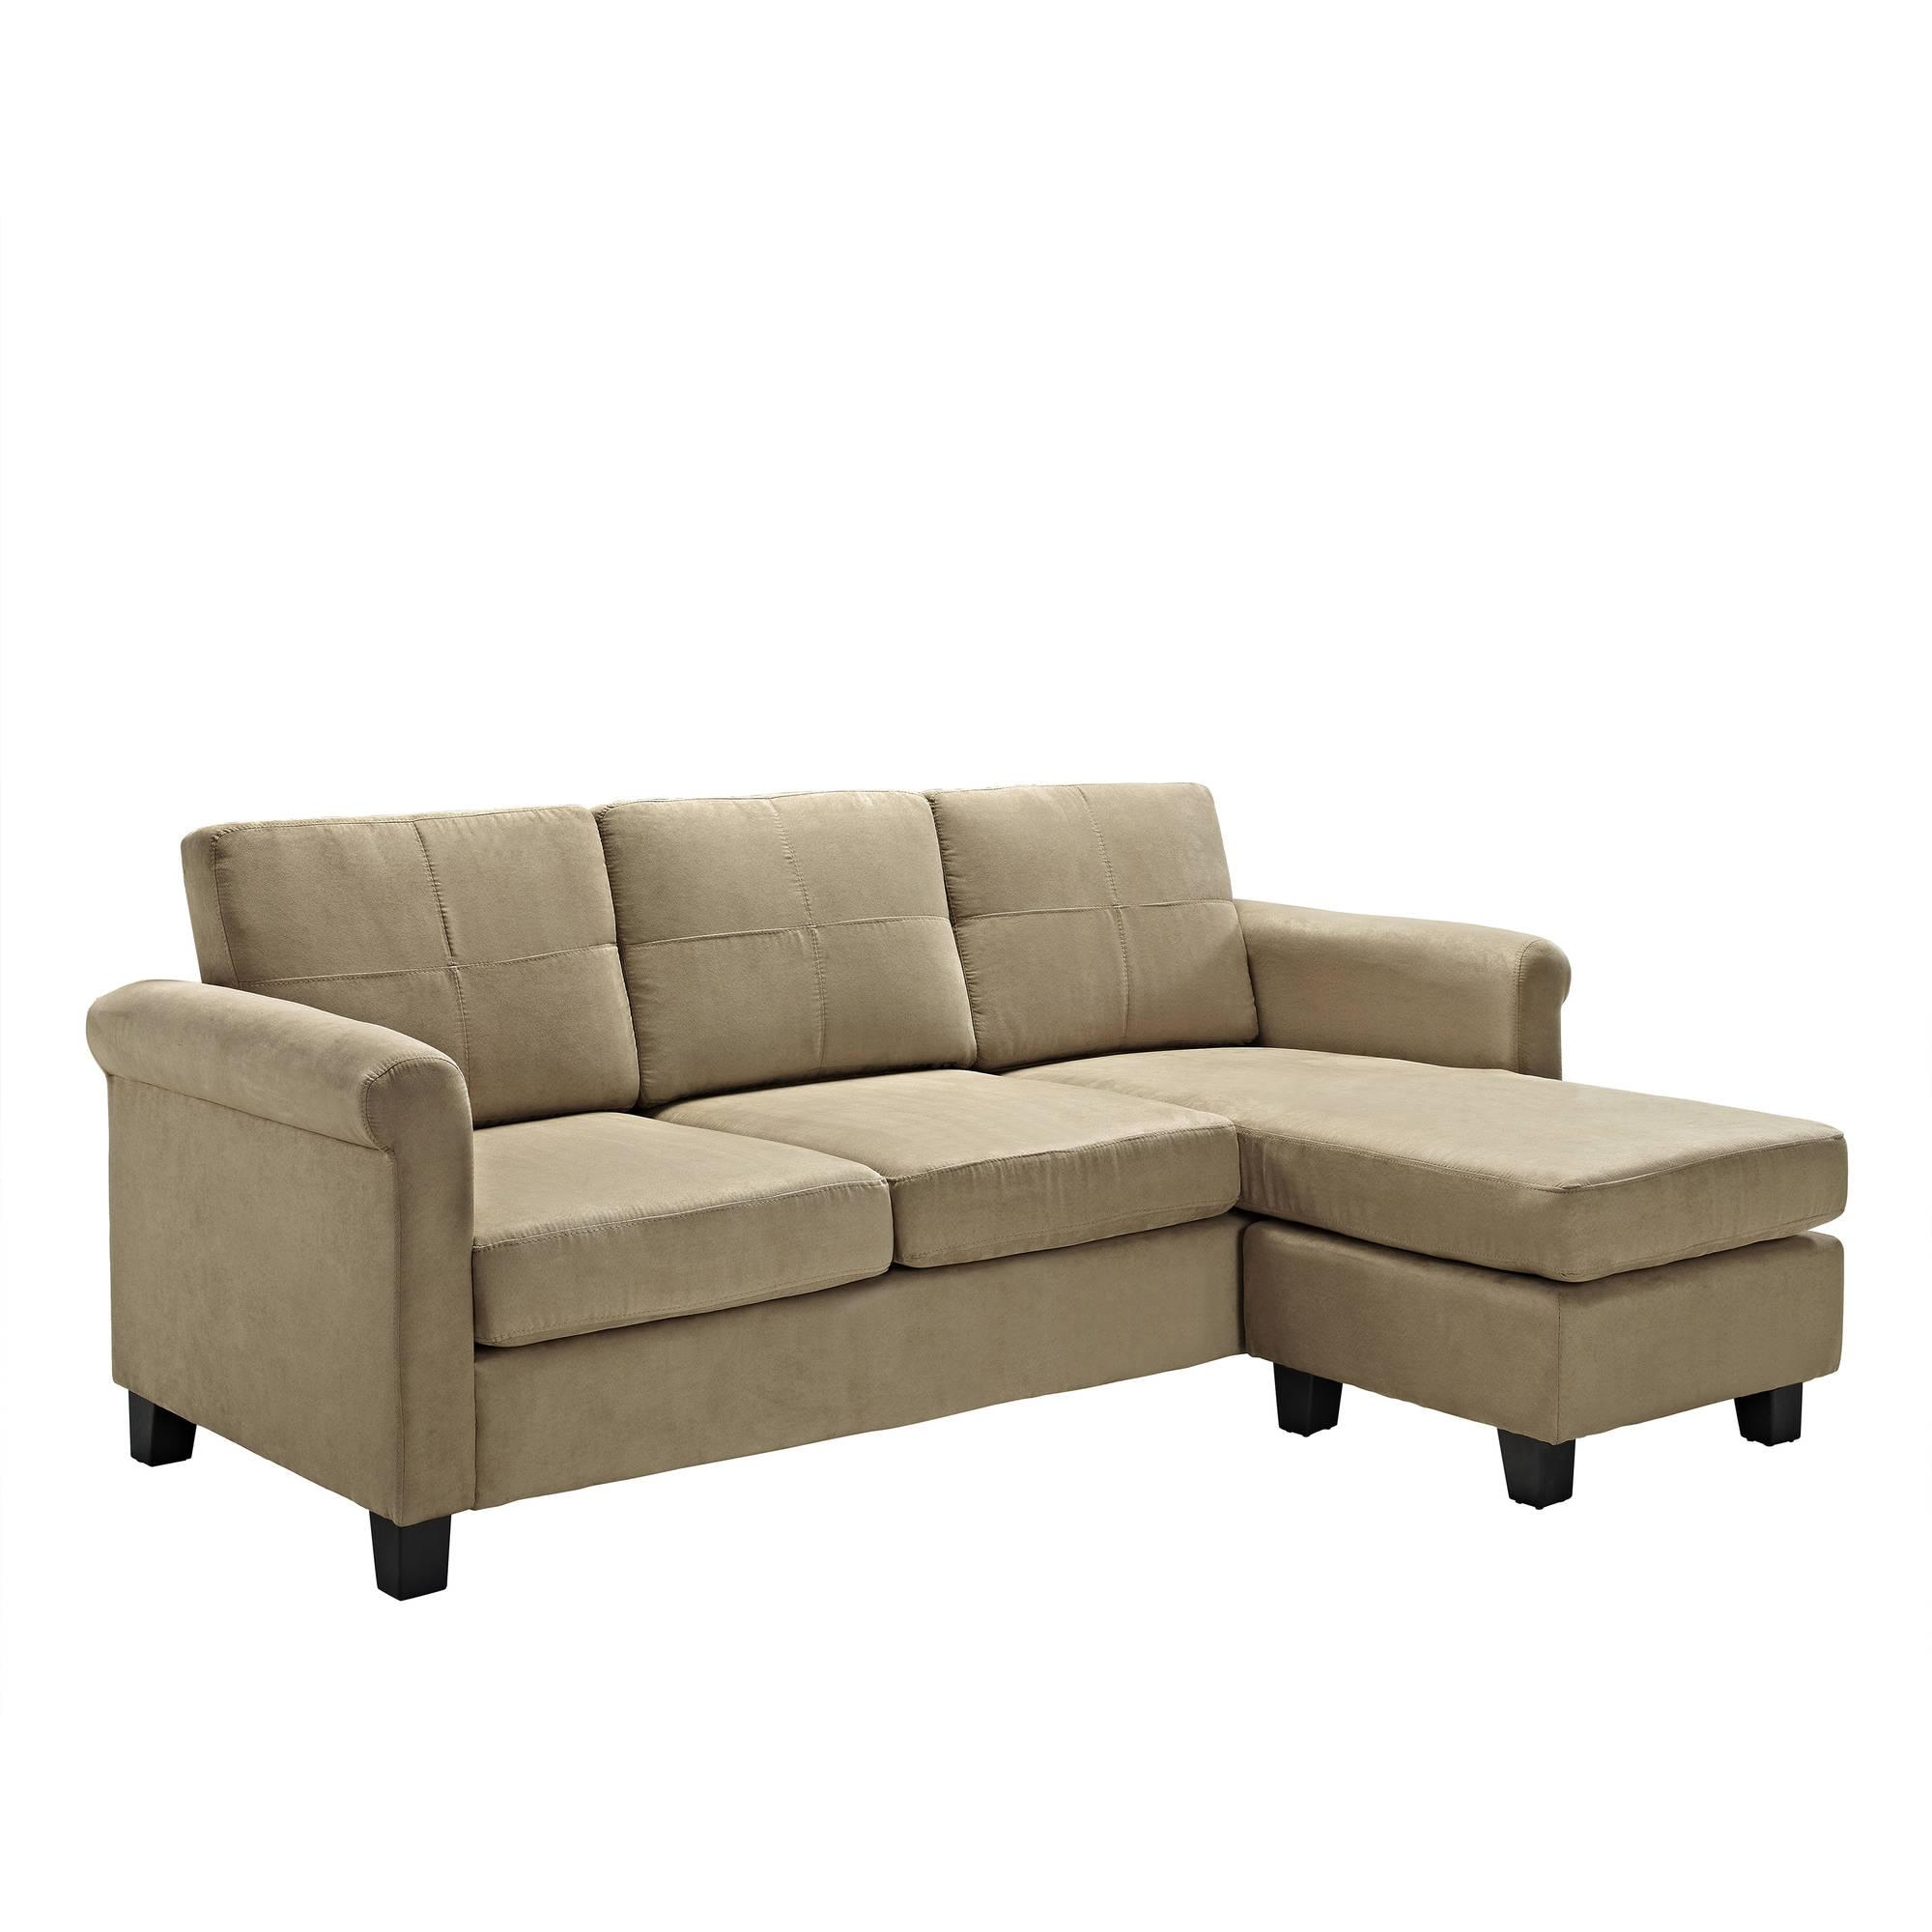 Dorel Living Small Spaces Configurable Sectional Sofa, Multiple Pertaining To Sectional Small Spaces (Image 6 of 20)